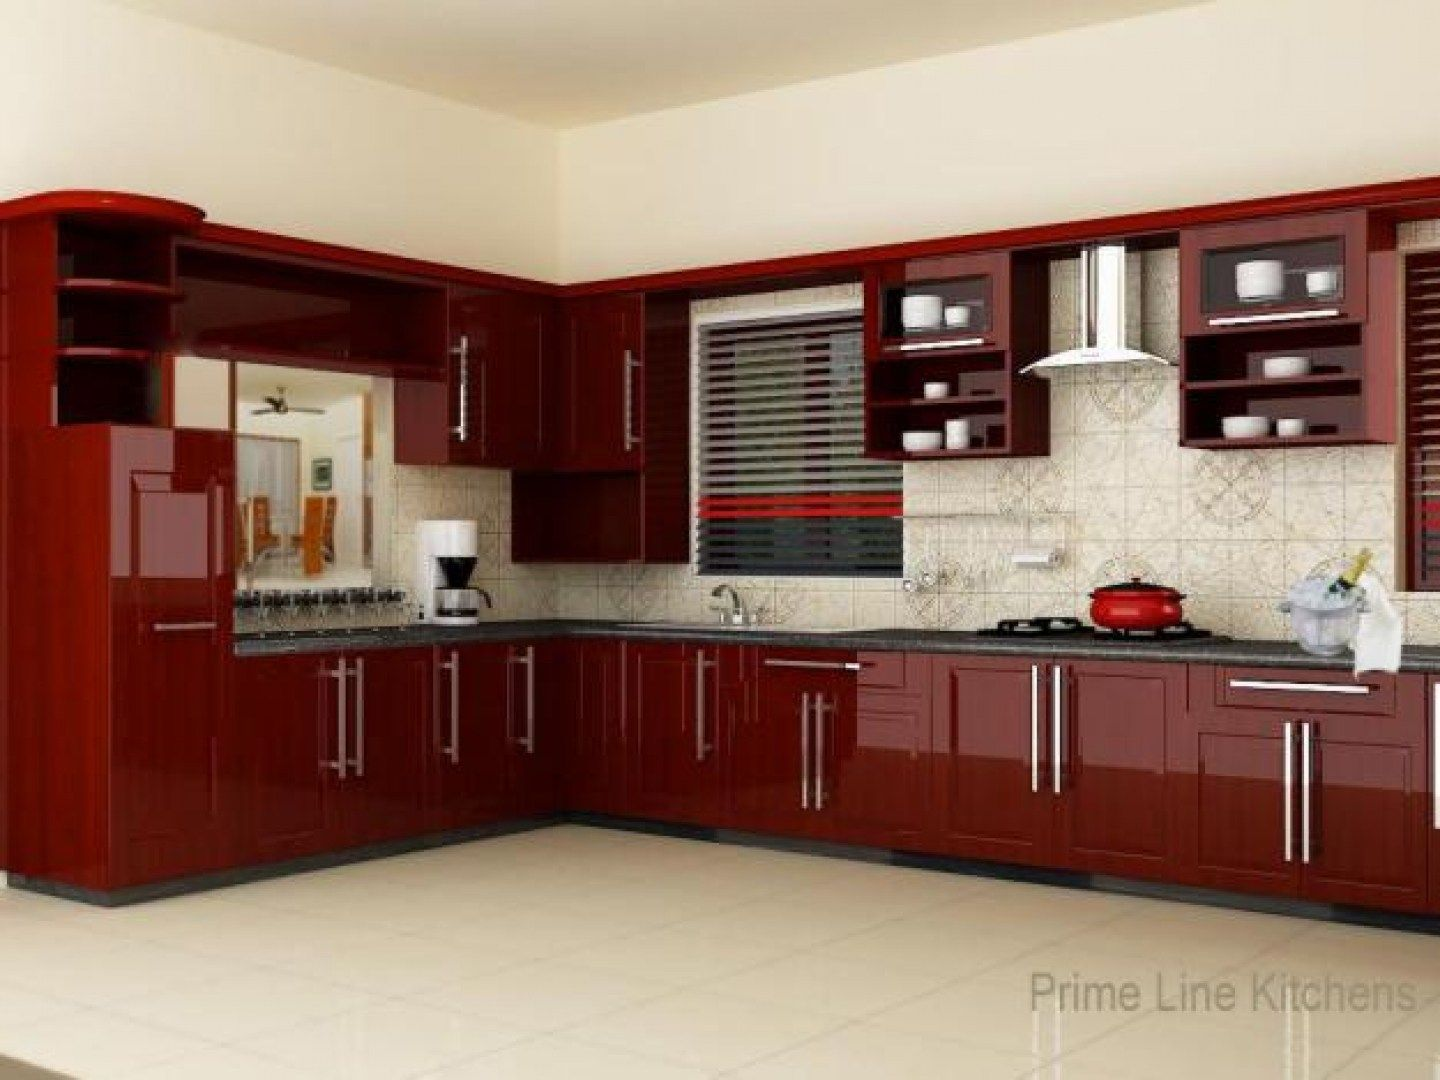 Kitchen design ideas kitchen woodwork designs hyderabad Newwood cupboards